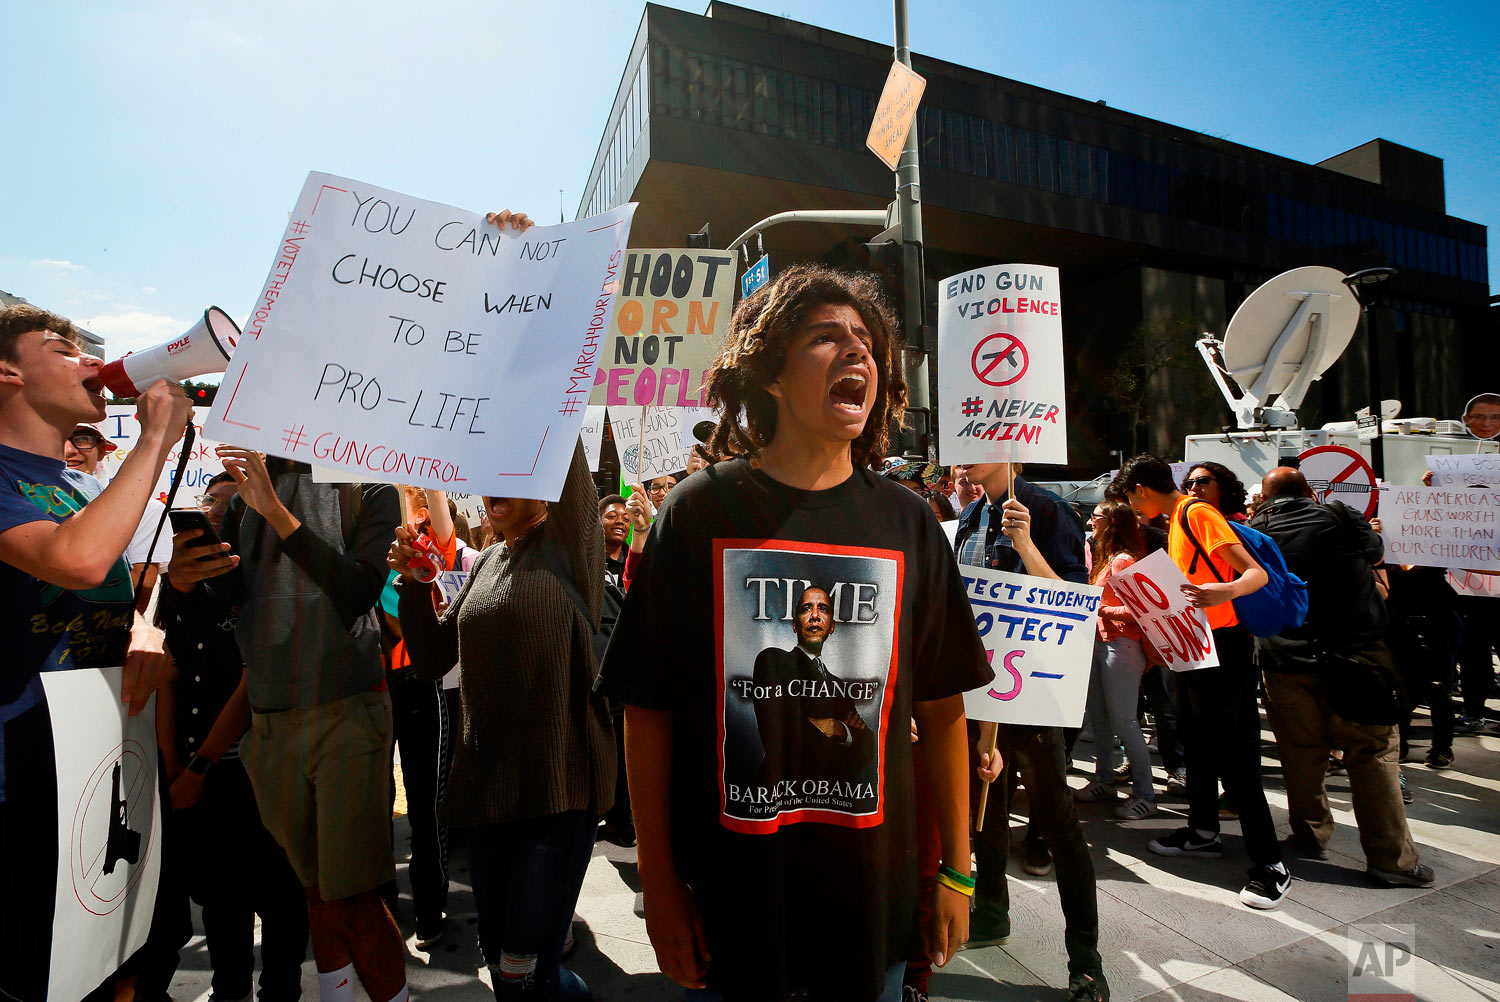 High school student Sebastian Chavez, center, joins hundred of students walking out of school to rally against against gun violence, Friday, April 20, 2018, in downtown Los Angeles Friday, April 20, 2018. Protests were held across the country Friday, on the 19th anniversary of the Columbine High School shooting. (AP Photo/Damian Dovarganes)